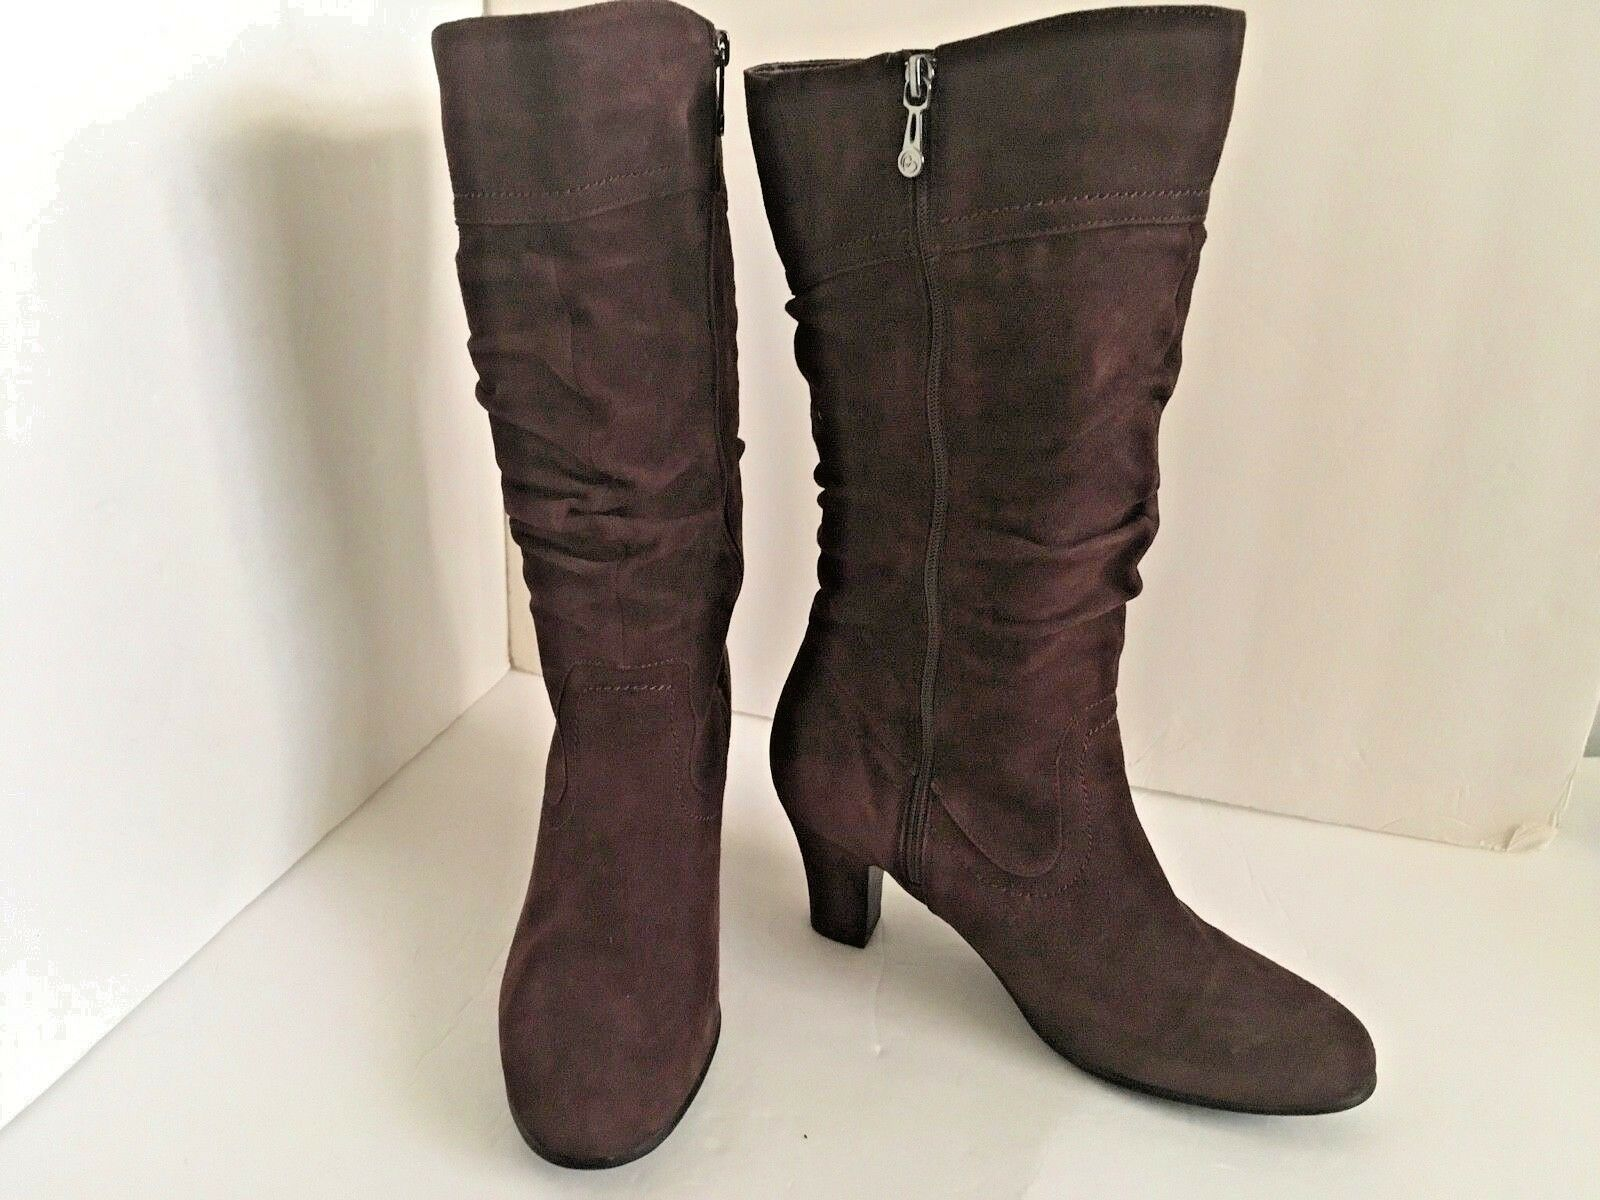 Blondo Mid-Calf Boots Brown Suede Aqua Predect For Women Size 7.5 38